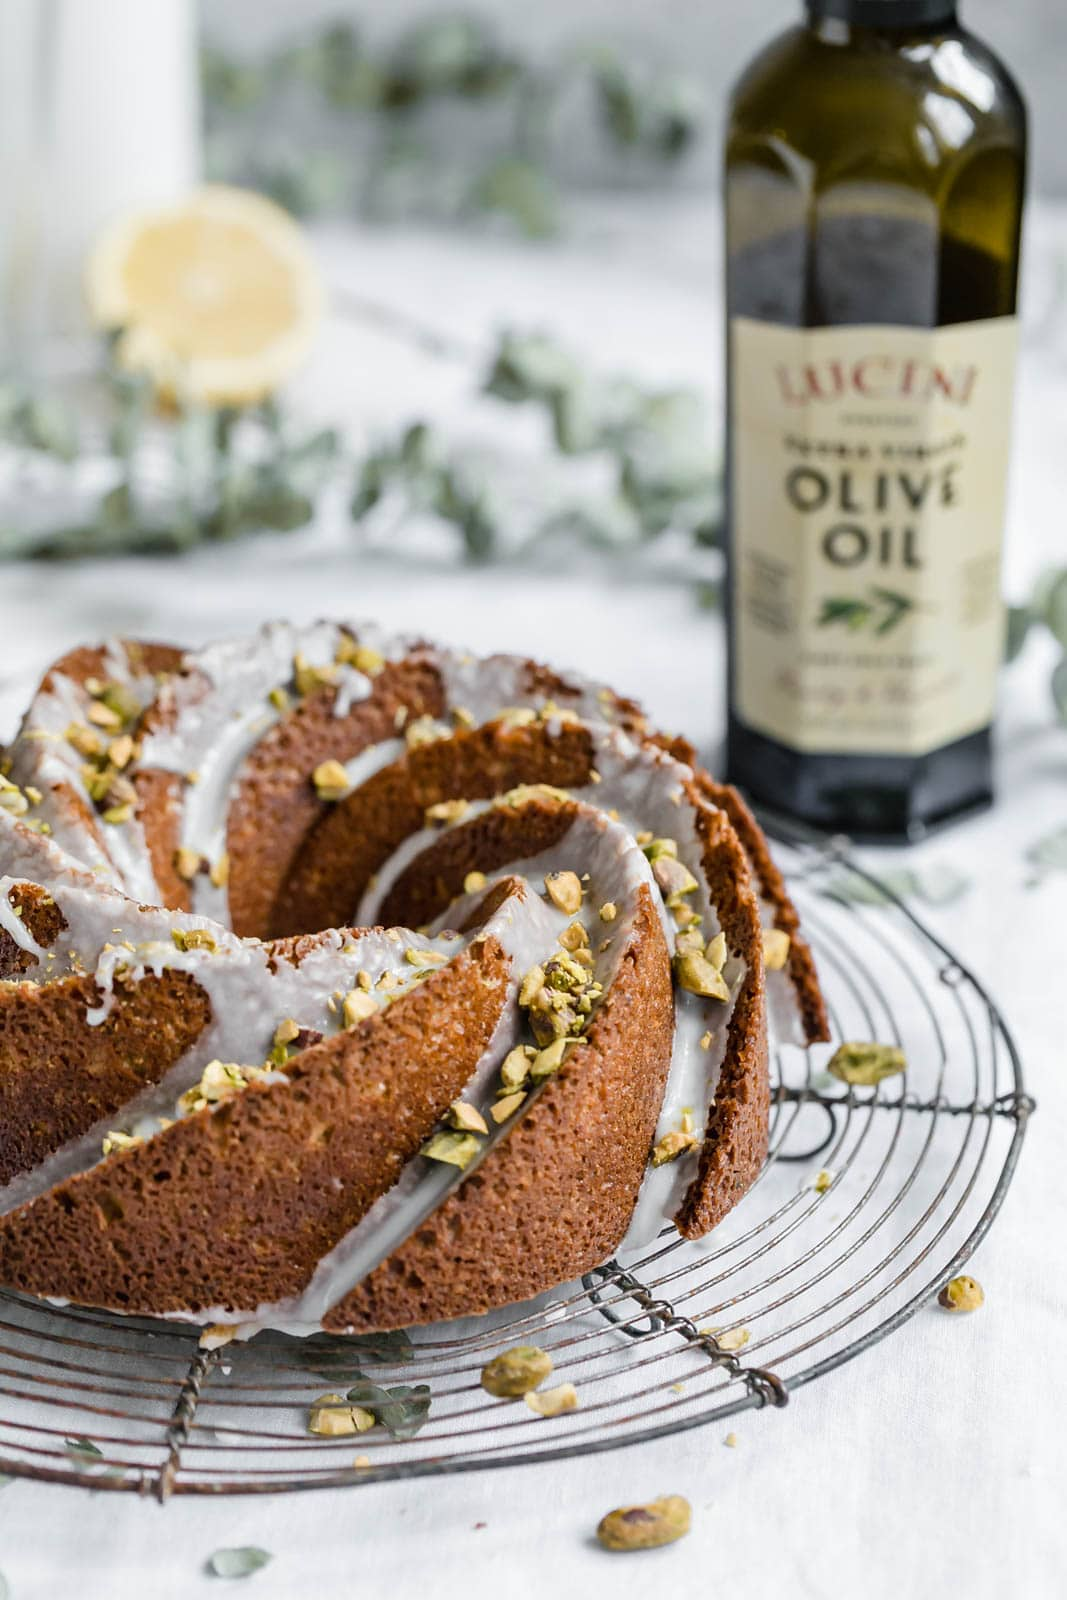 pistachio olive oil cake with lemon icing